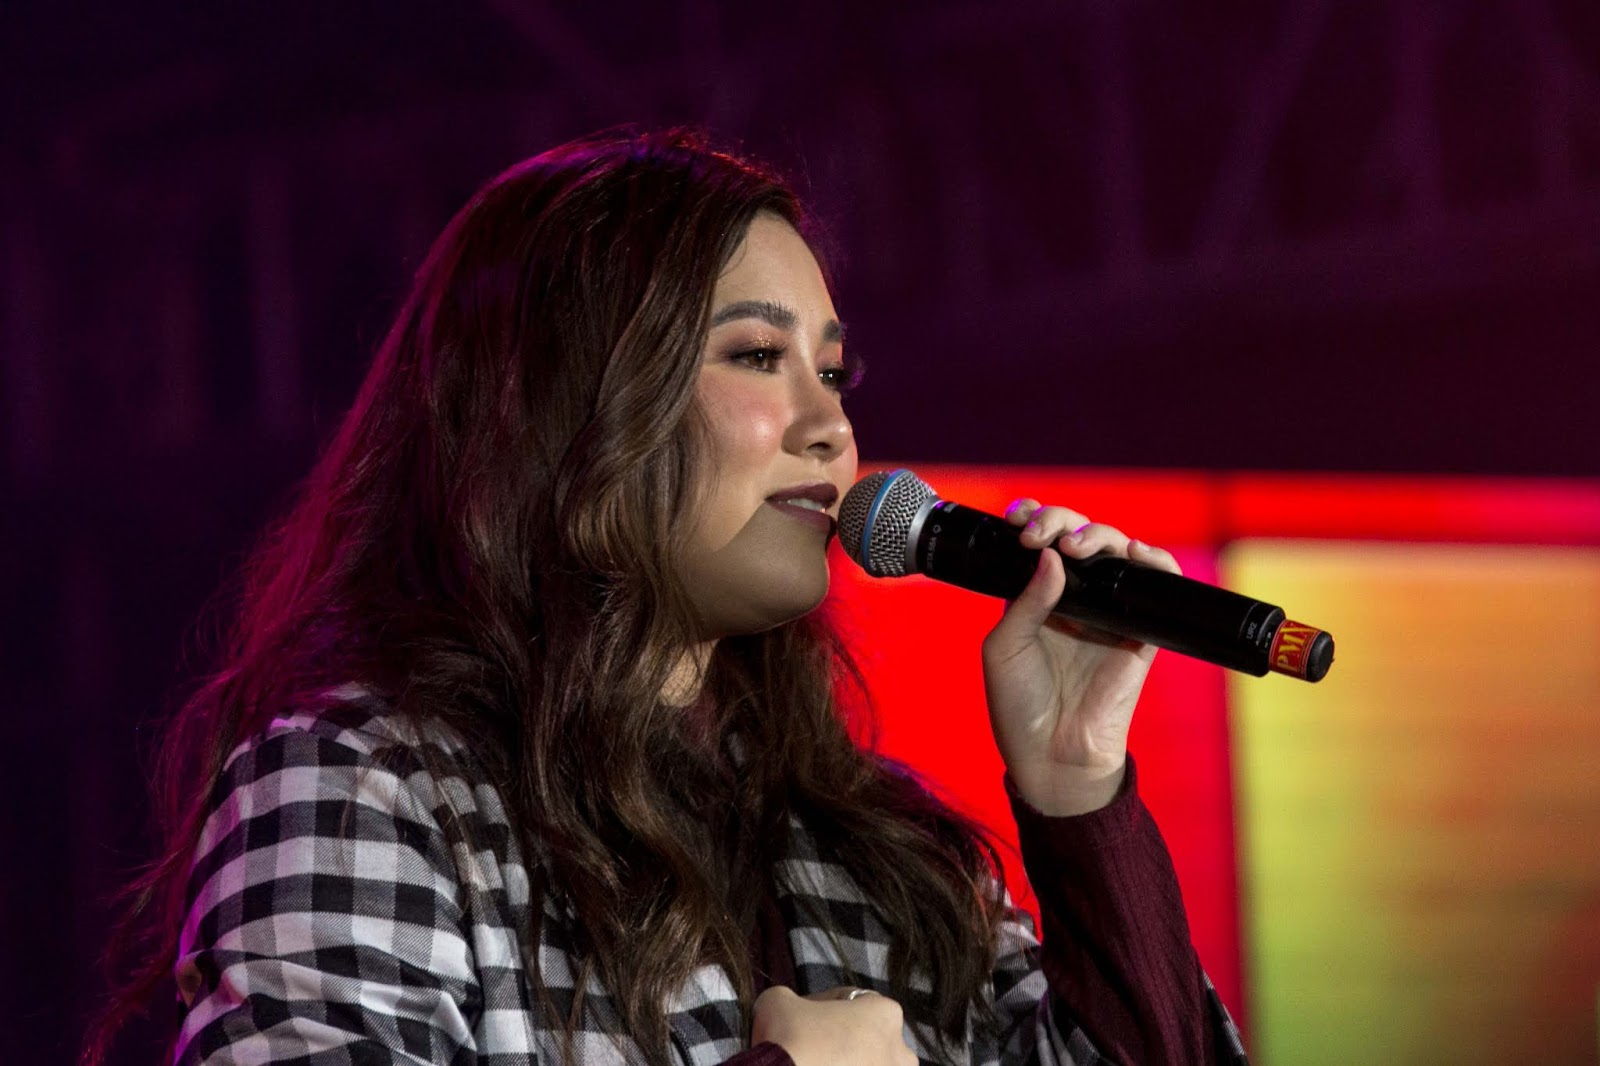 75ac729164537 Acer Philippines rounds off a successful Acer Day run as it partners with  Wish FM 107.5 for the Acer Day Digital Concert. Held last October at the  Eton ...